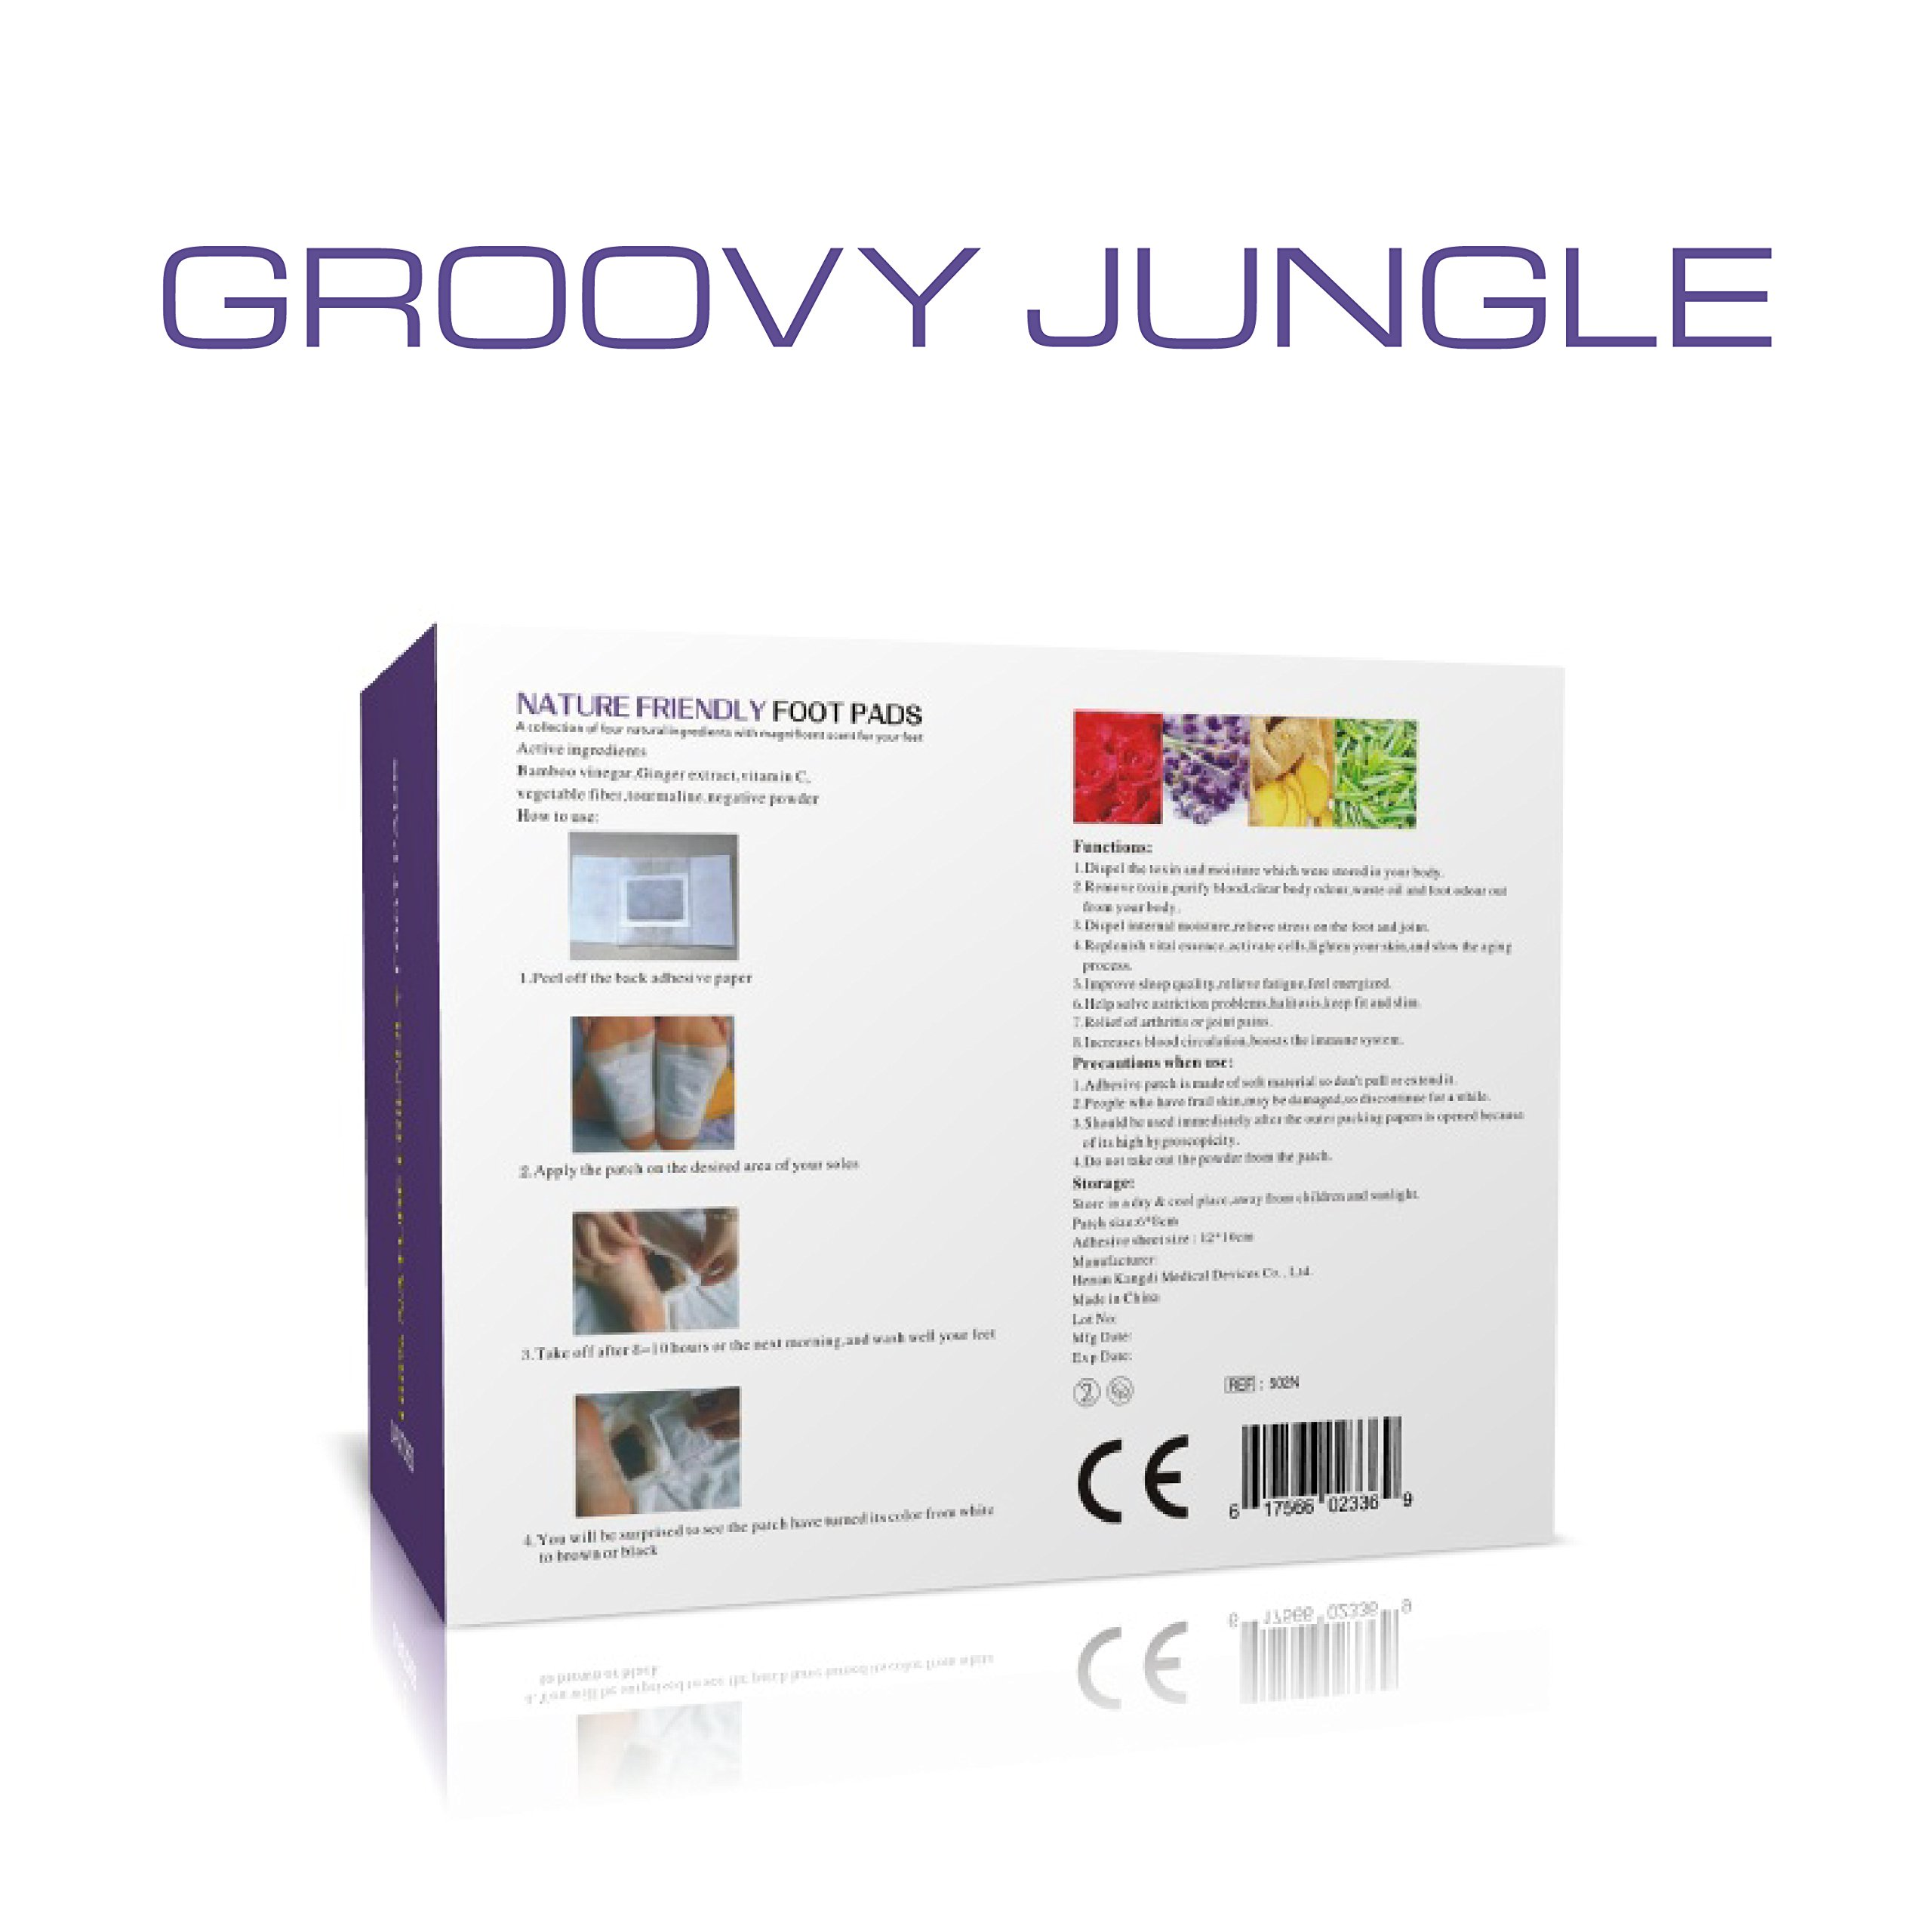 Detox Foot Pads by Groovy Jungle | Top Quality Cleansing Foot Pads | New Advanced Formula | 24 Pack by Groovy Jungle